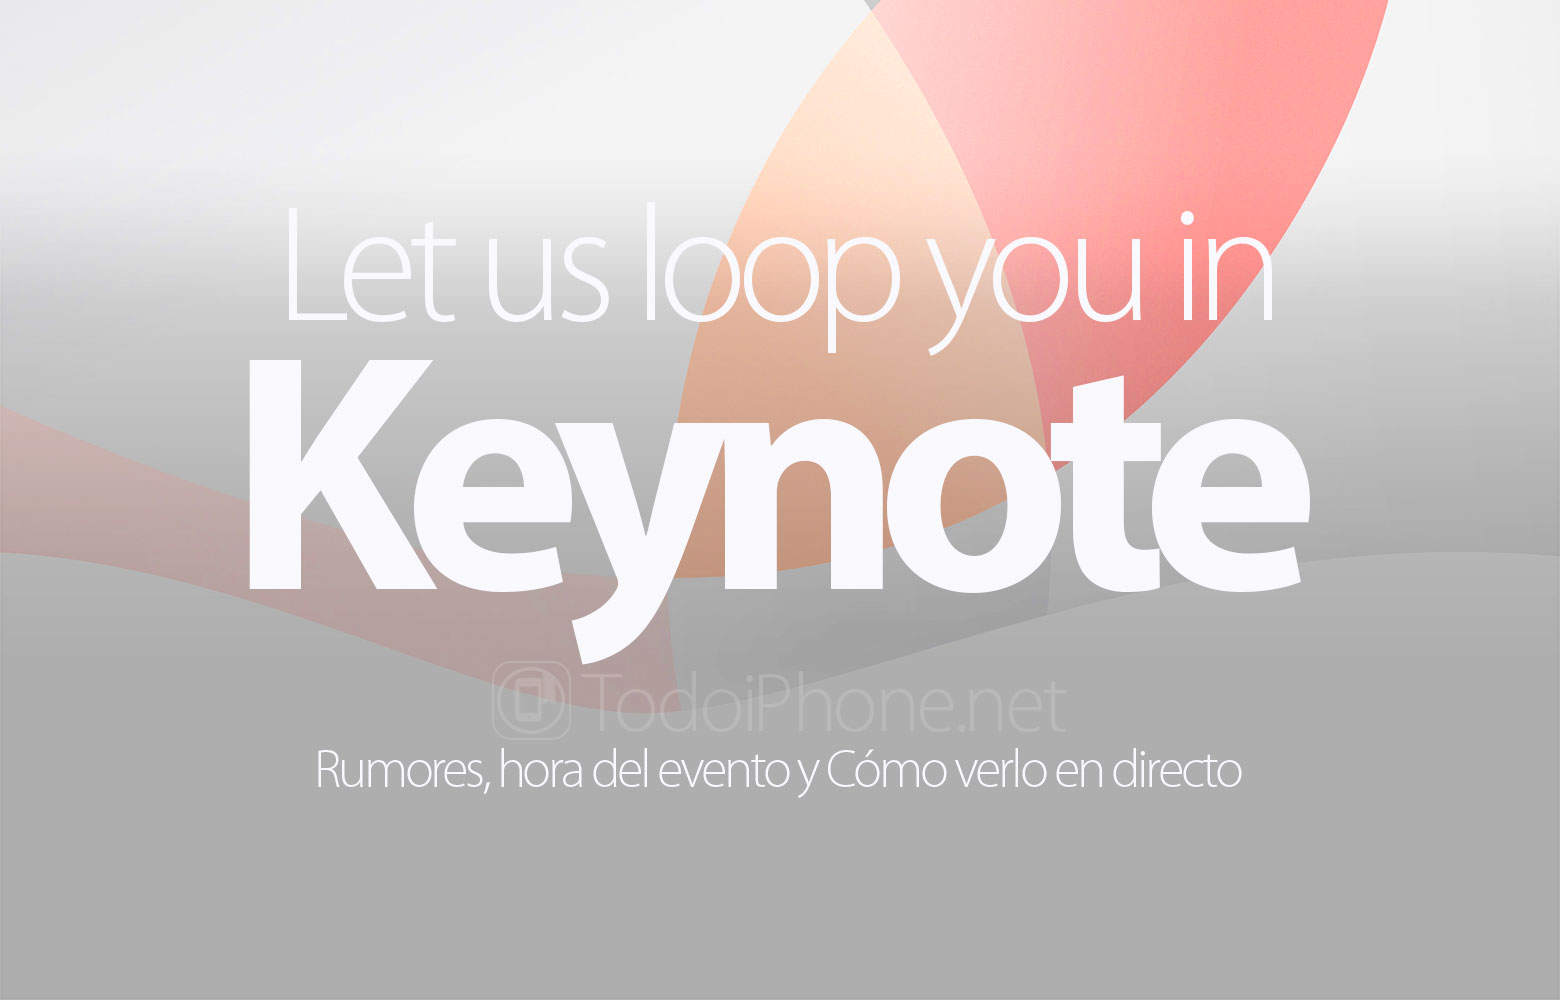 keynote-let-us-loop-you-in-rumores-hora-ver